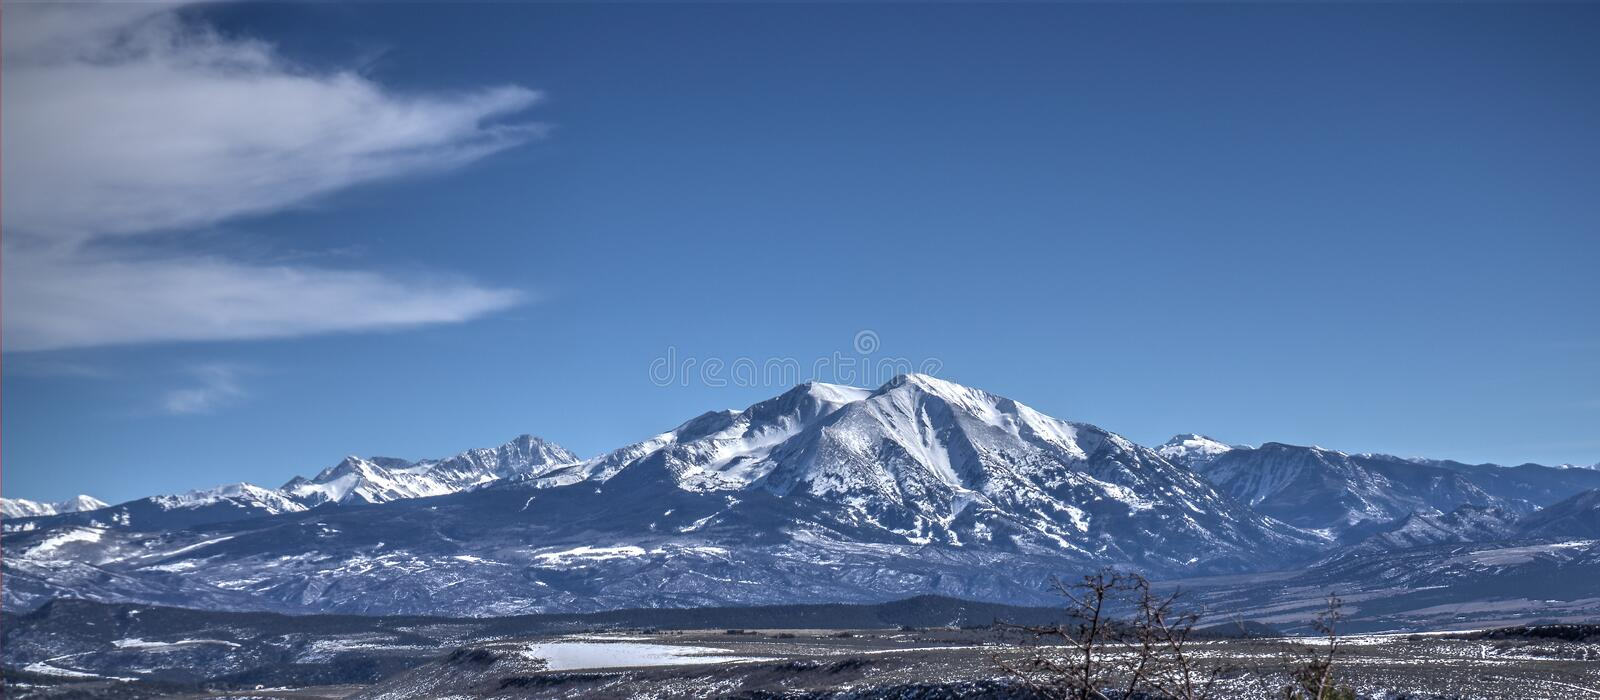 Mountain Range in Colorado with clouds and a snow capped top stock photos